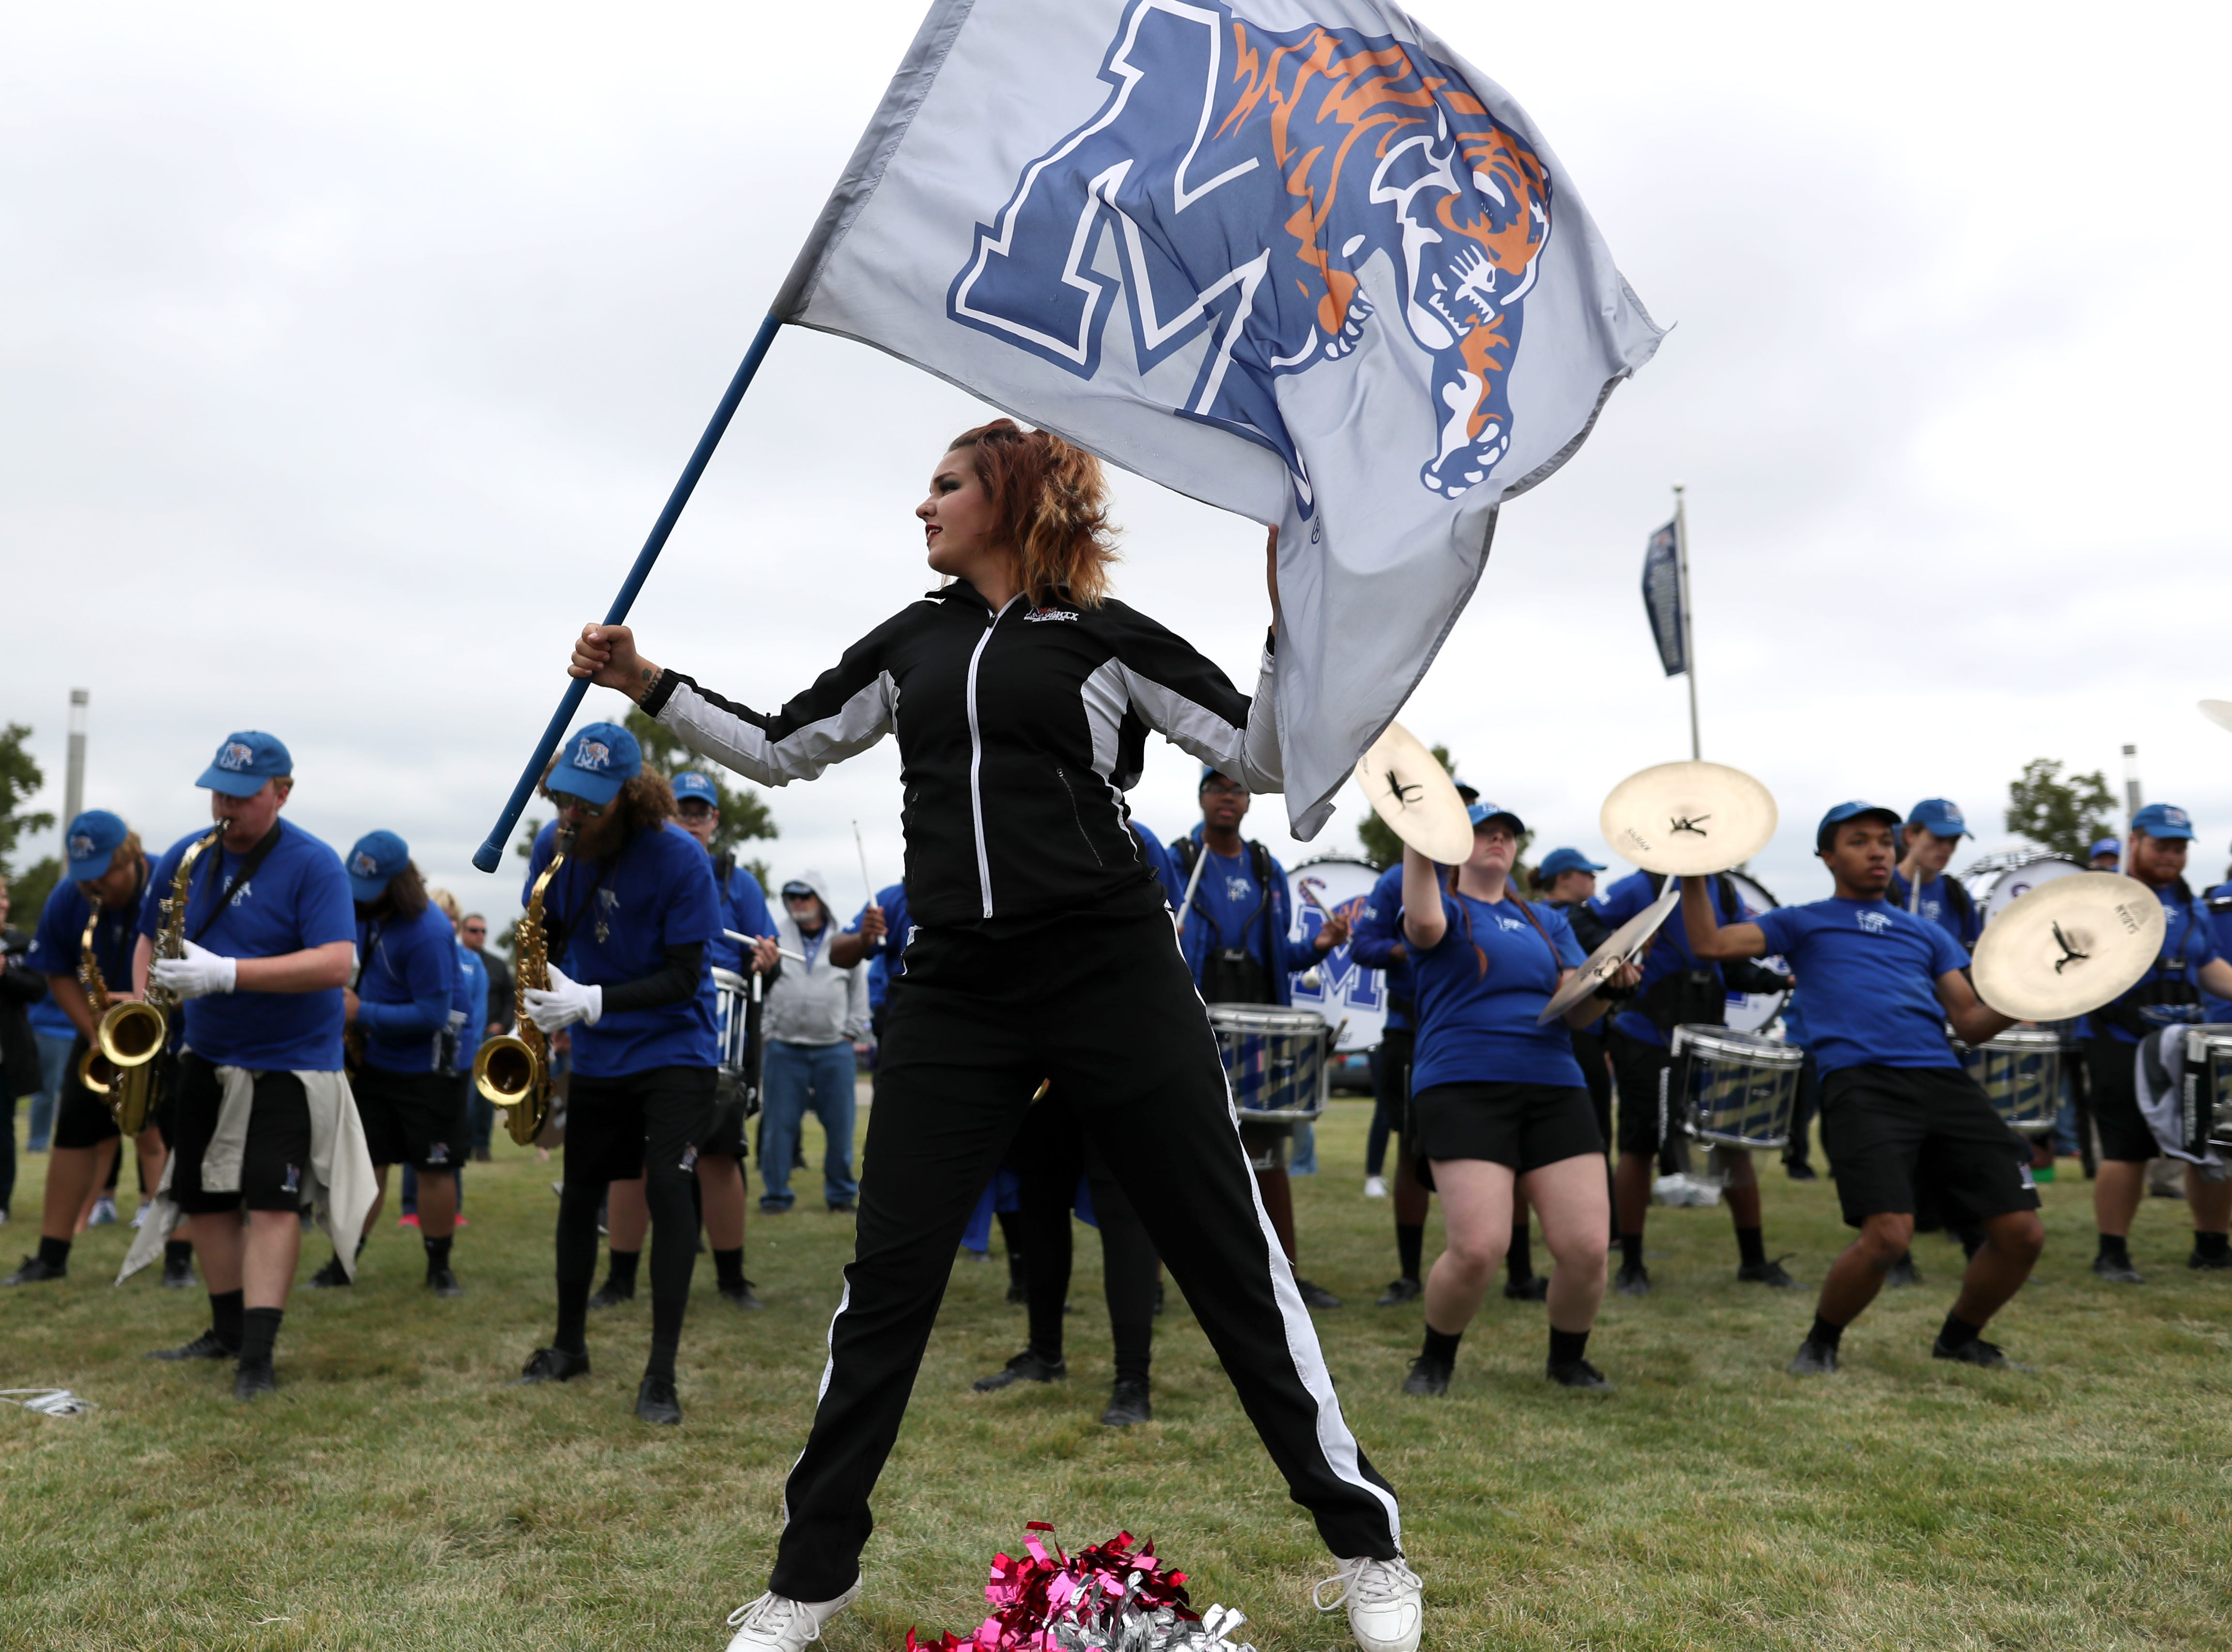 Memphis Tigers cheerleaders perform during the Tiger Walk before their game against UCF at the Liberty Bowl on Saturday, Oct. 13, 2018.